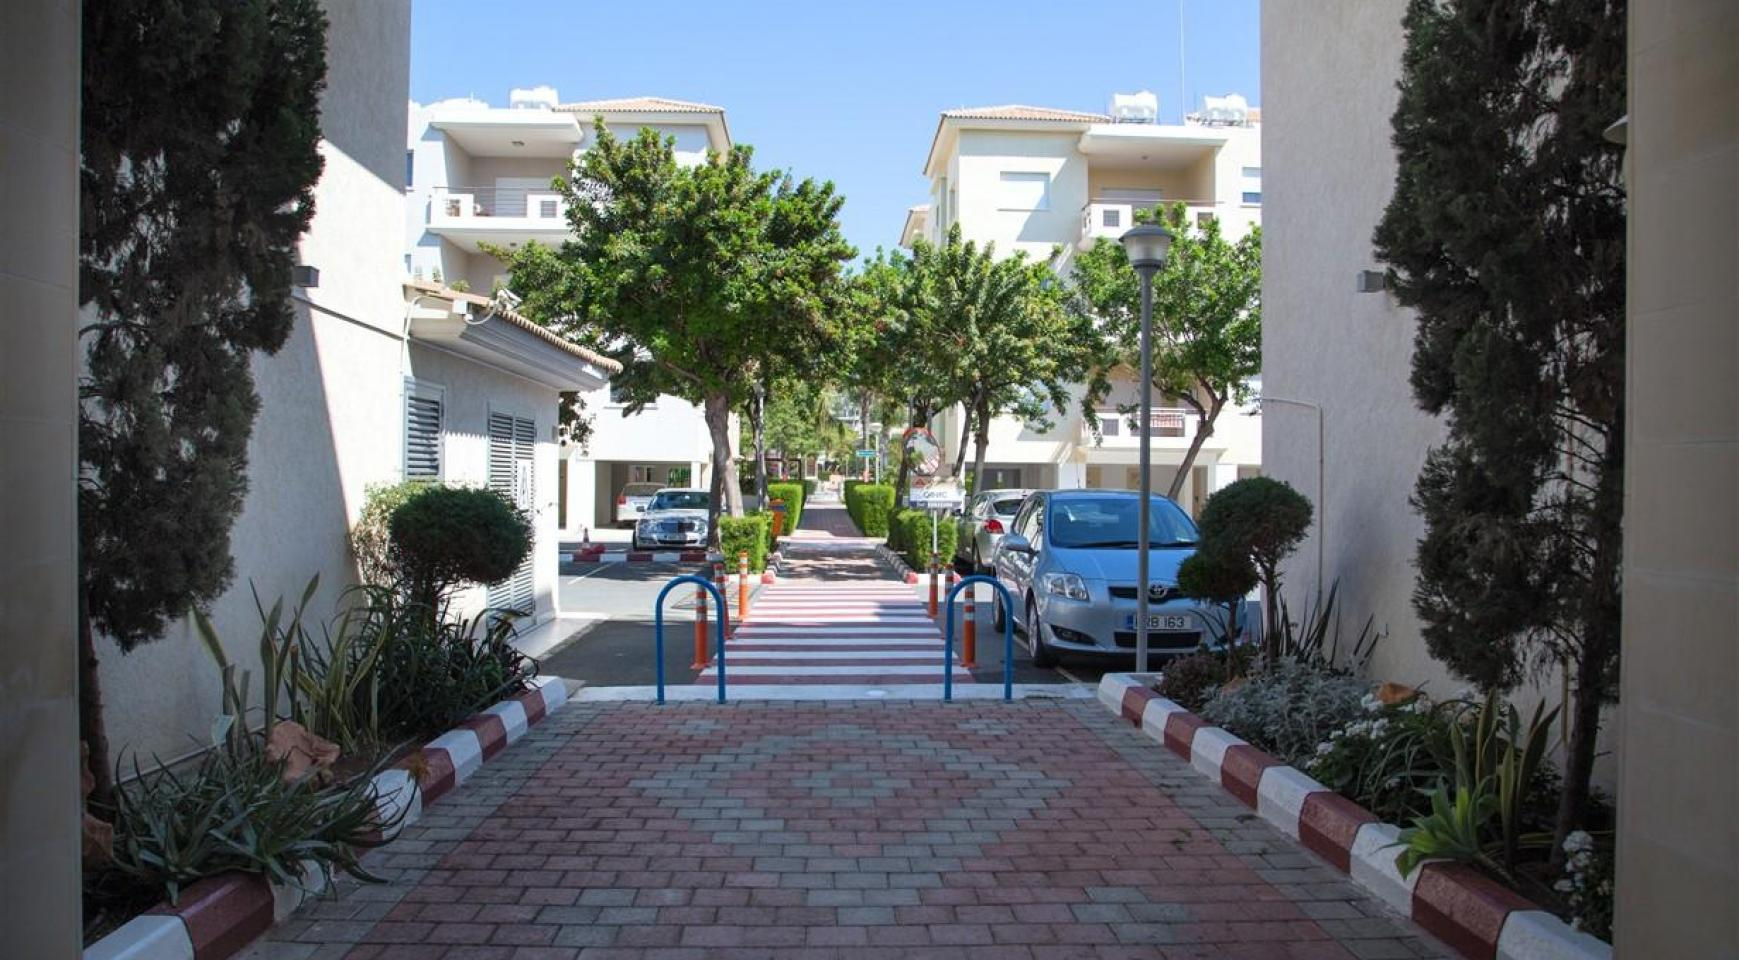 Luxury 2 Bedroom Apartment Mesogios Iris 304 in the Tourist area near the Beach - 43